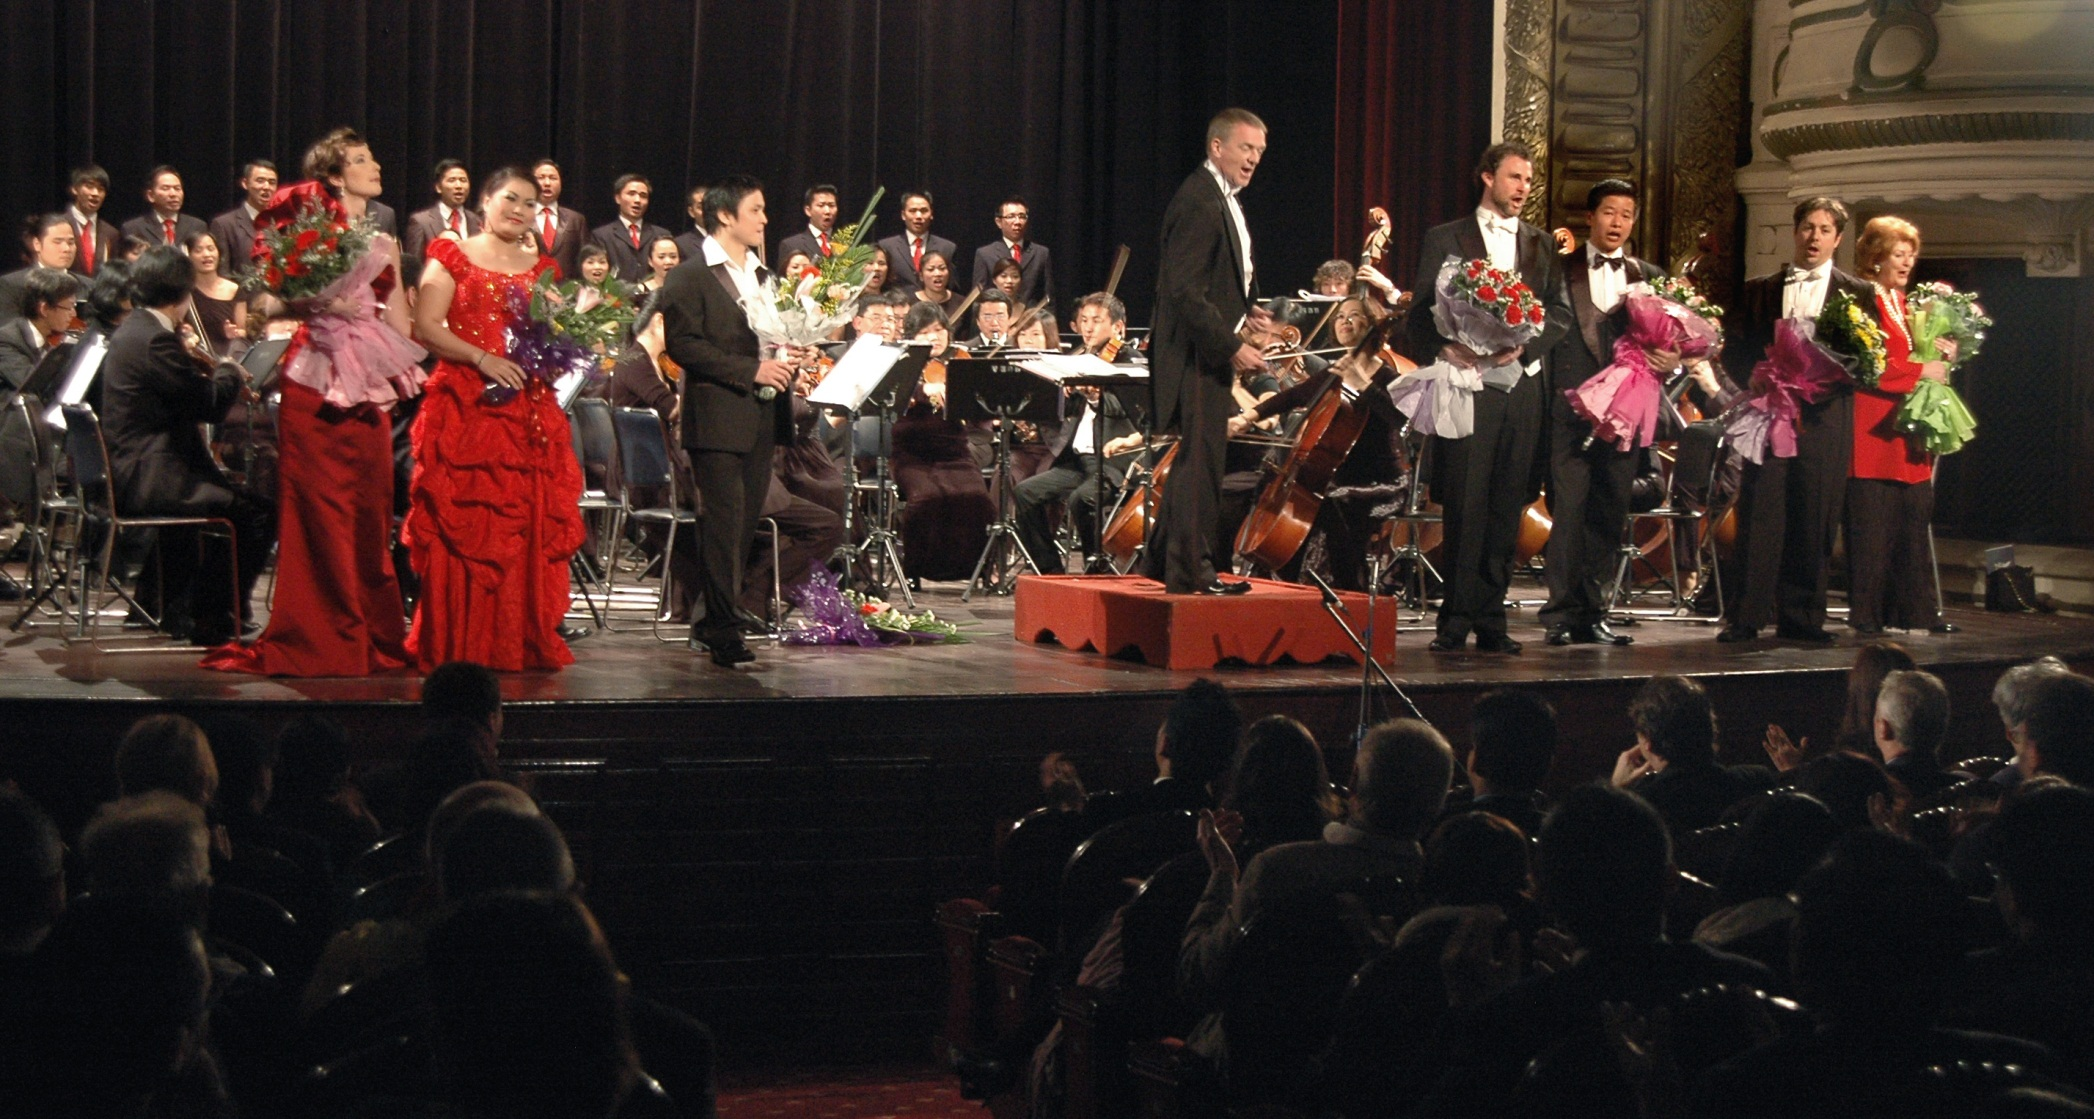 Curtain call at the opera and ballet gala in the Hanoi Opera House in Vietnam